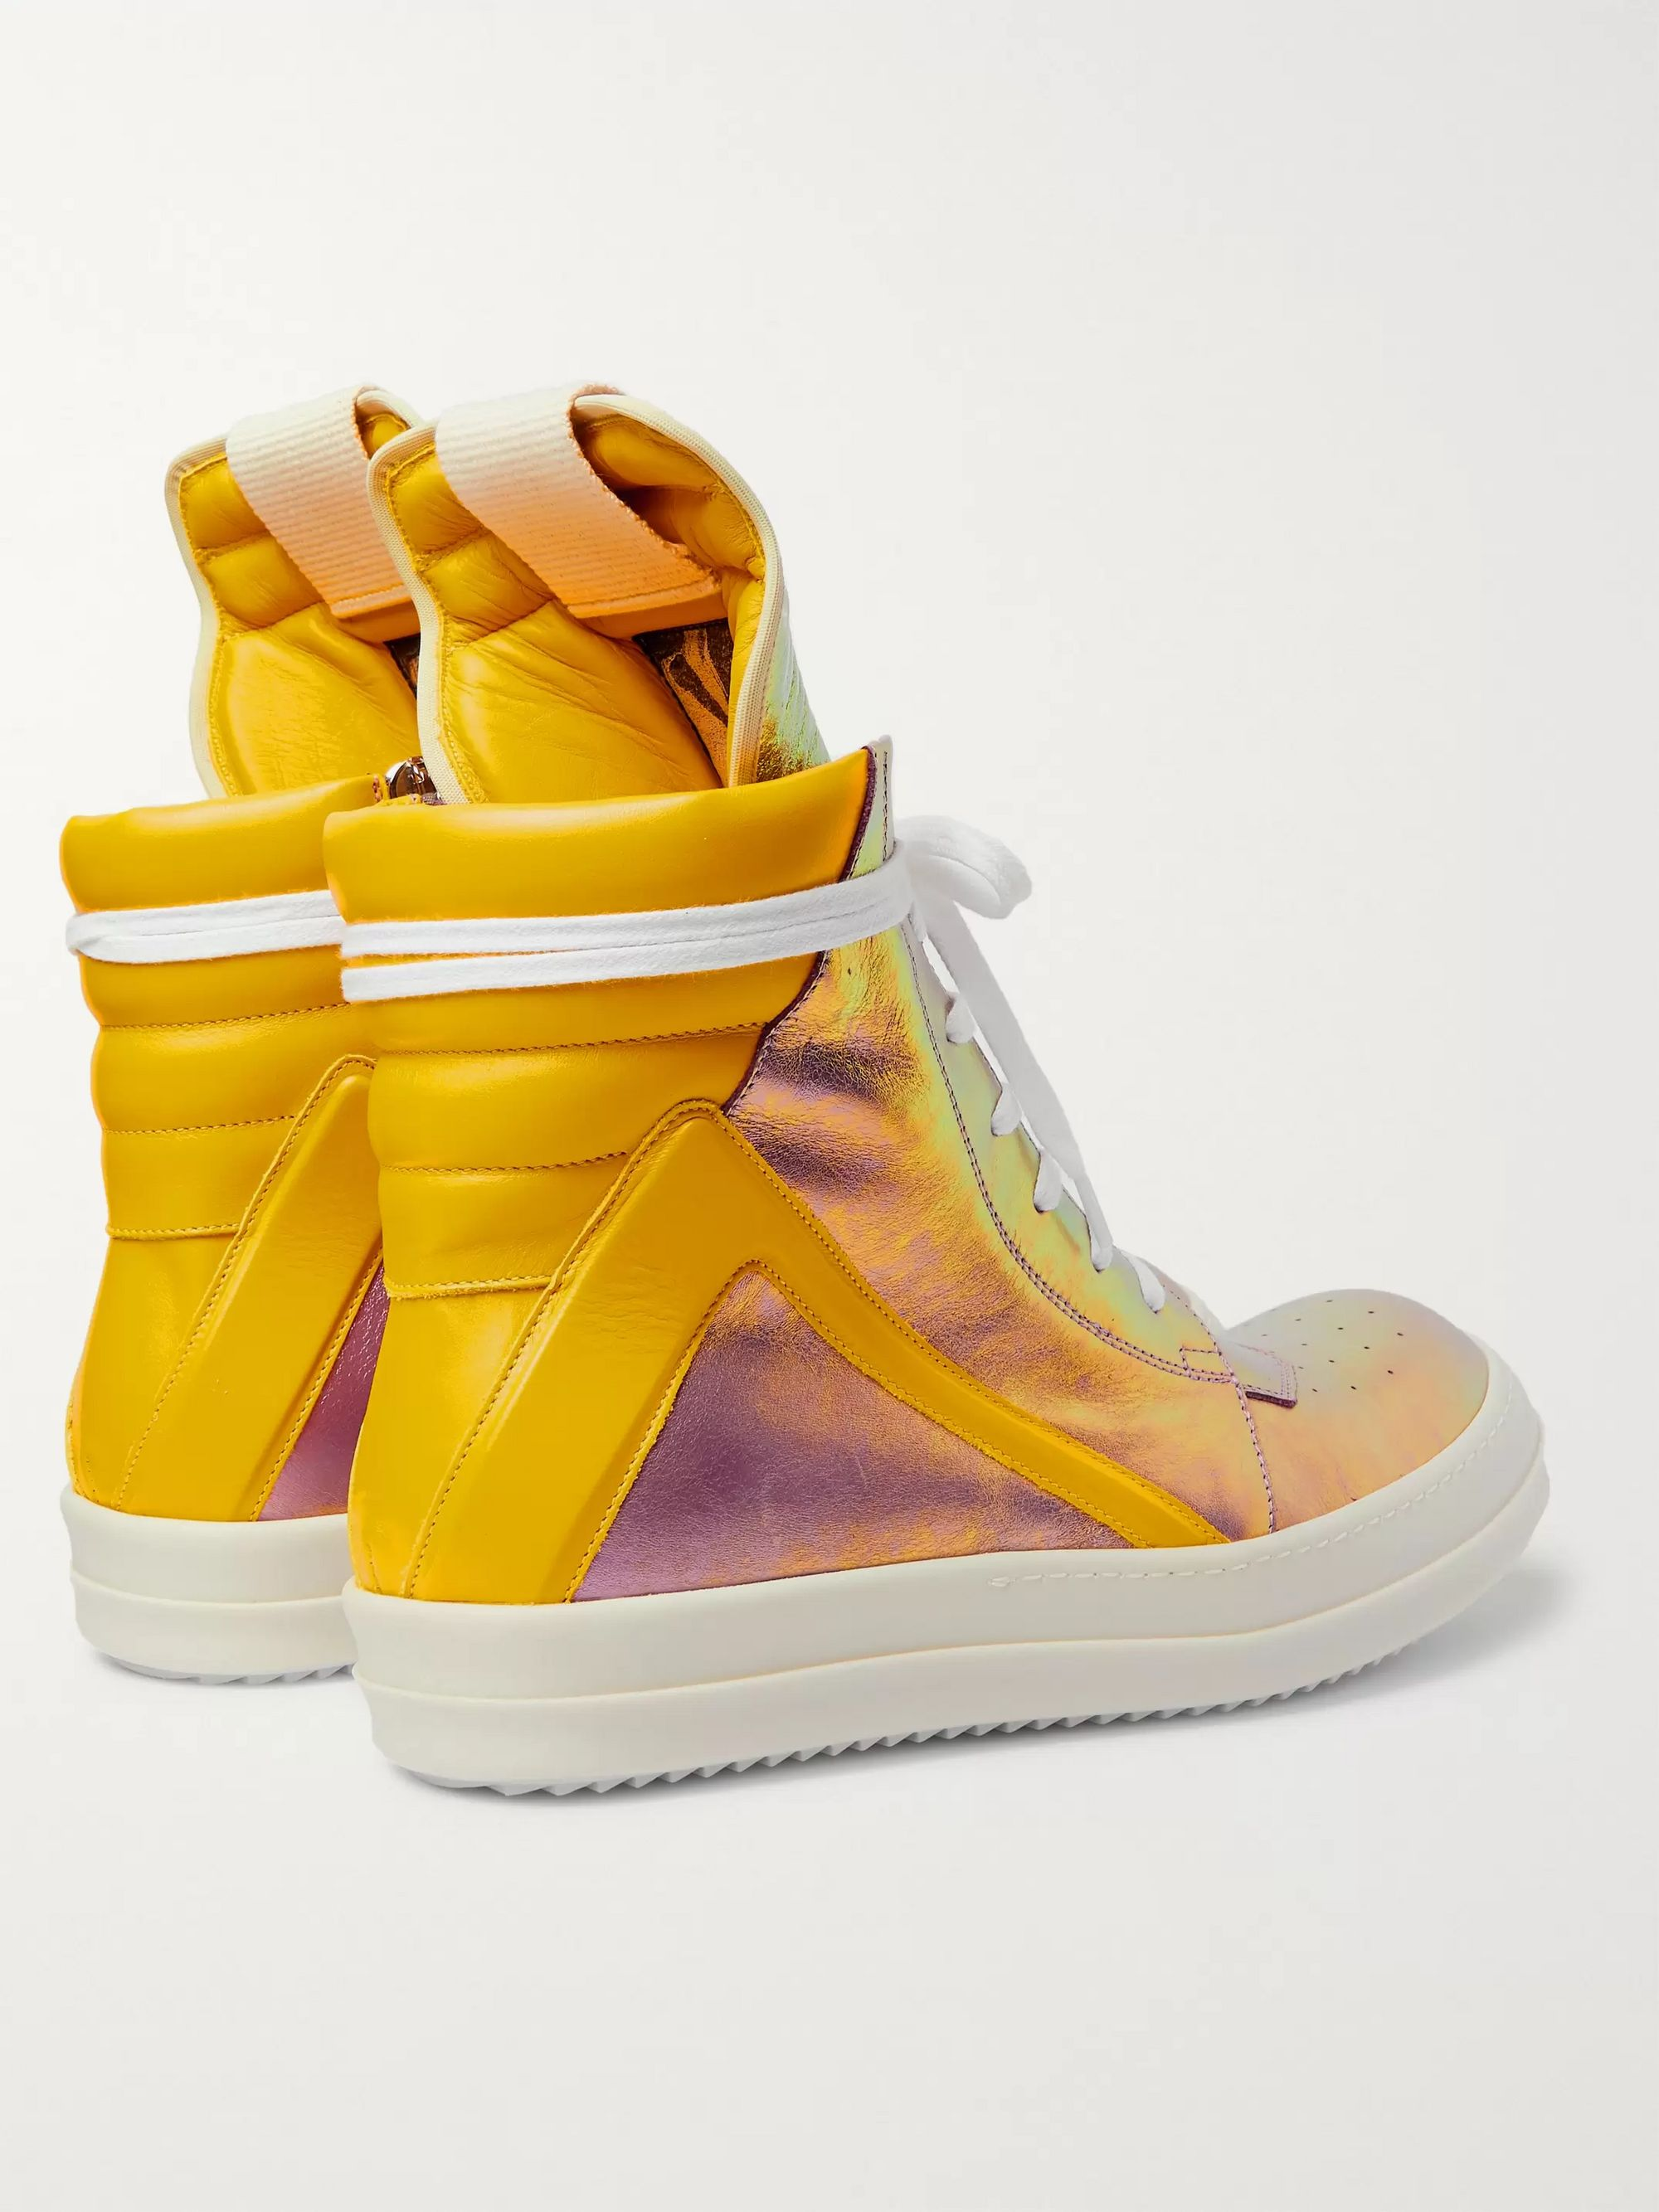 Rick Owens Geobasket Two-Tone Metallic Leather High-Top Sneakers